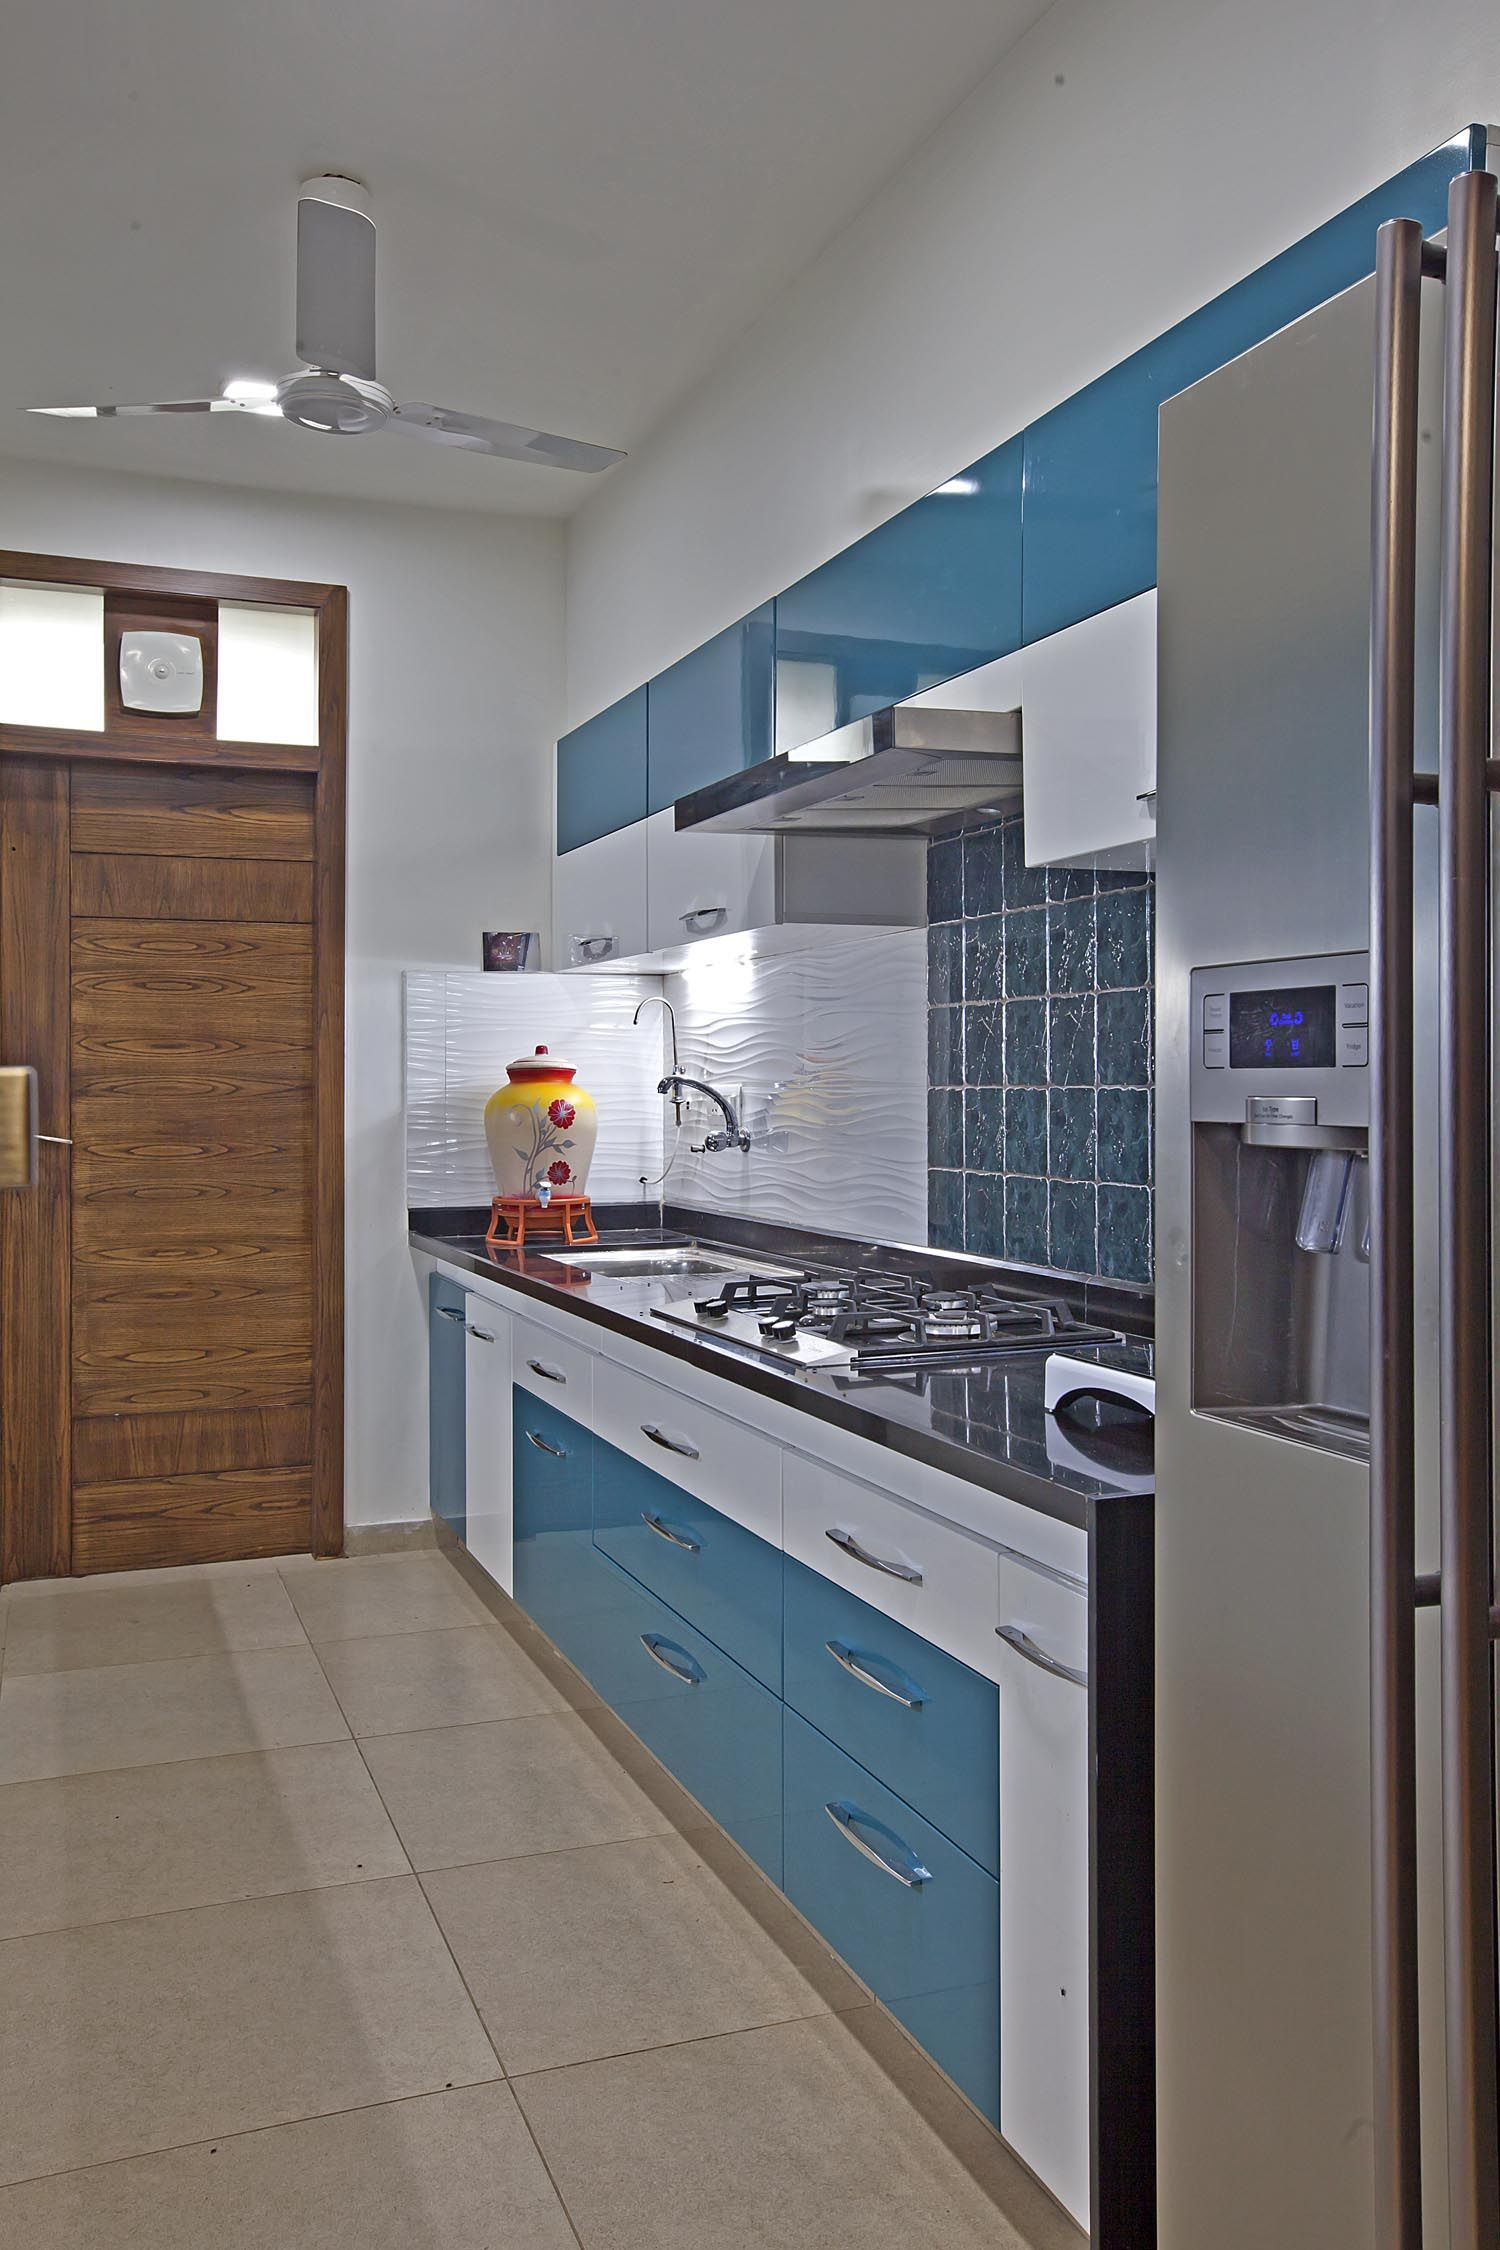 Small Kitchens May Seem To Be A Very Difficult Design Challenge But They Can Also Be Modular Kitchen Cabinets Kitchen Cabinet Design Kitchen Furniture Design